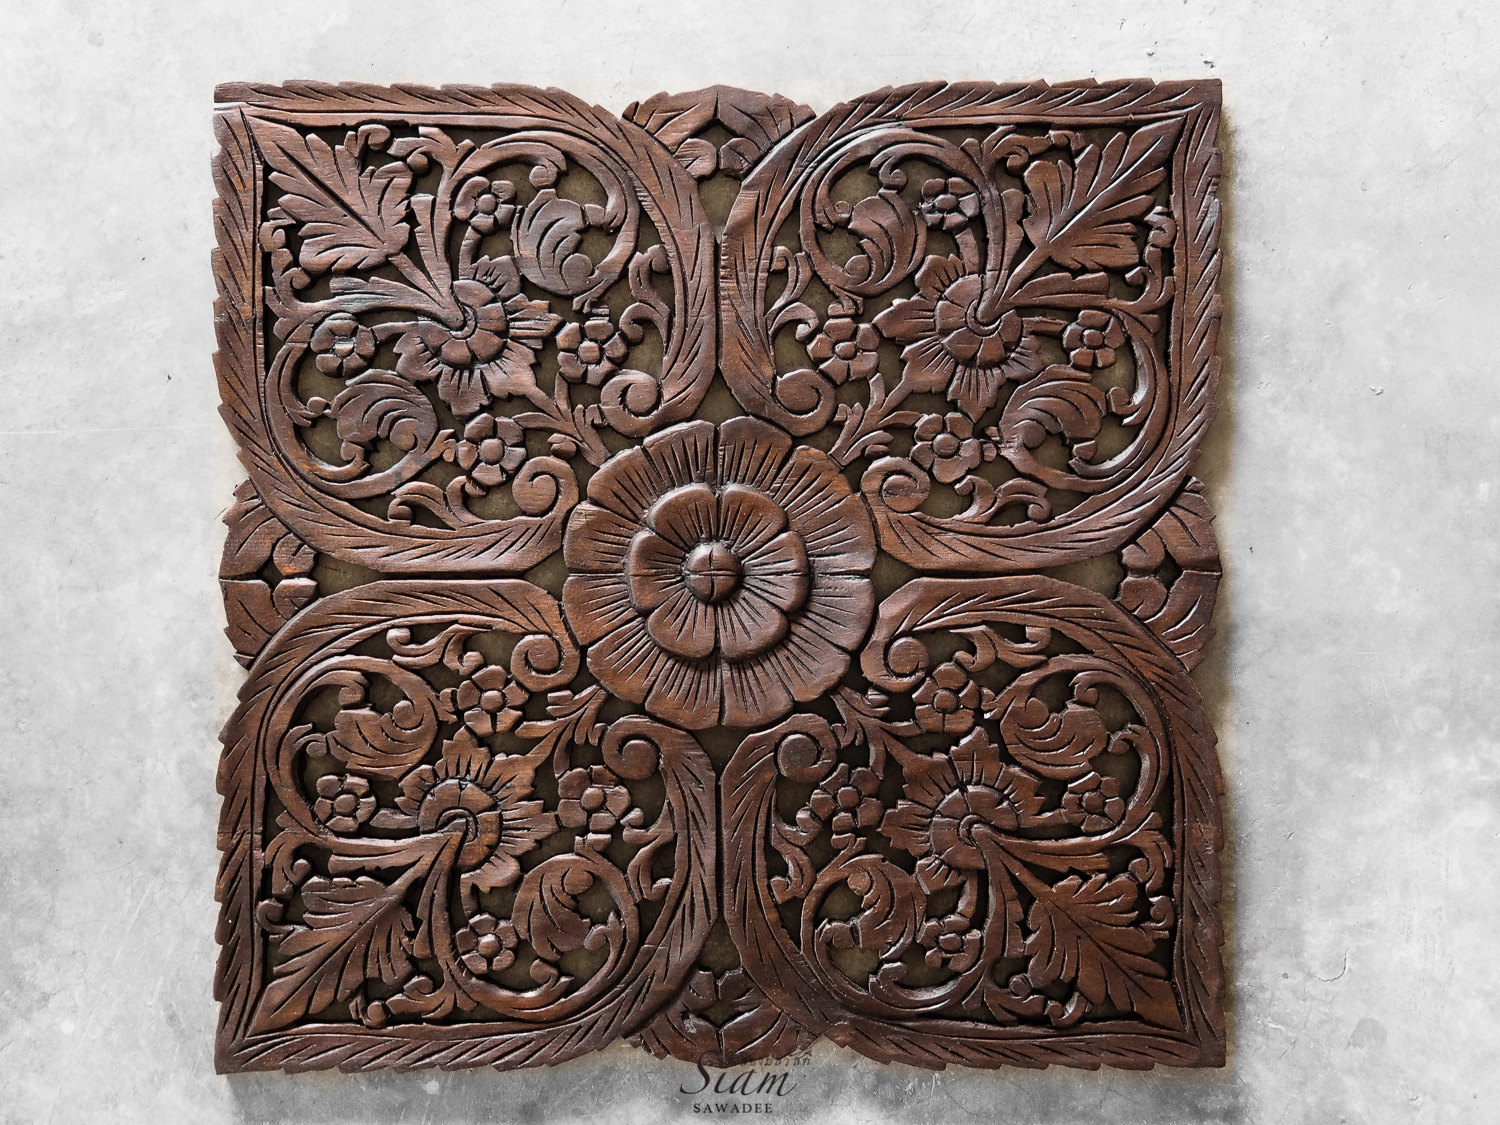 Wood Wall Hanging. Hand Carved Teak Wall Art Decor. Relief Carving. Perfect for Dinning Room, Living Room & Bedroom (2'x2' ft. Dark brown)